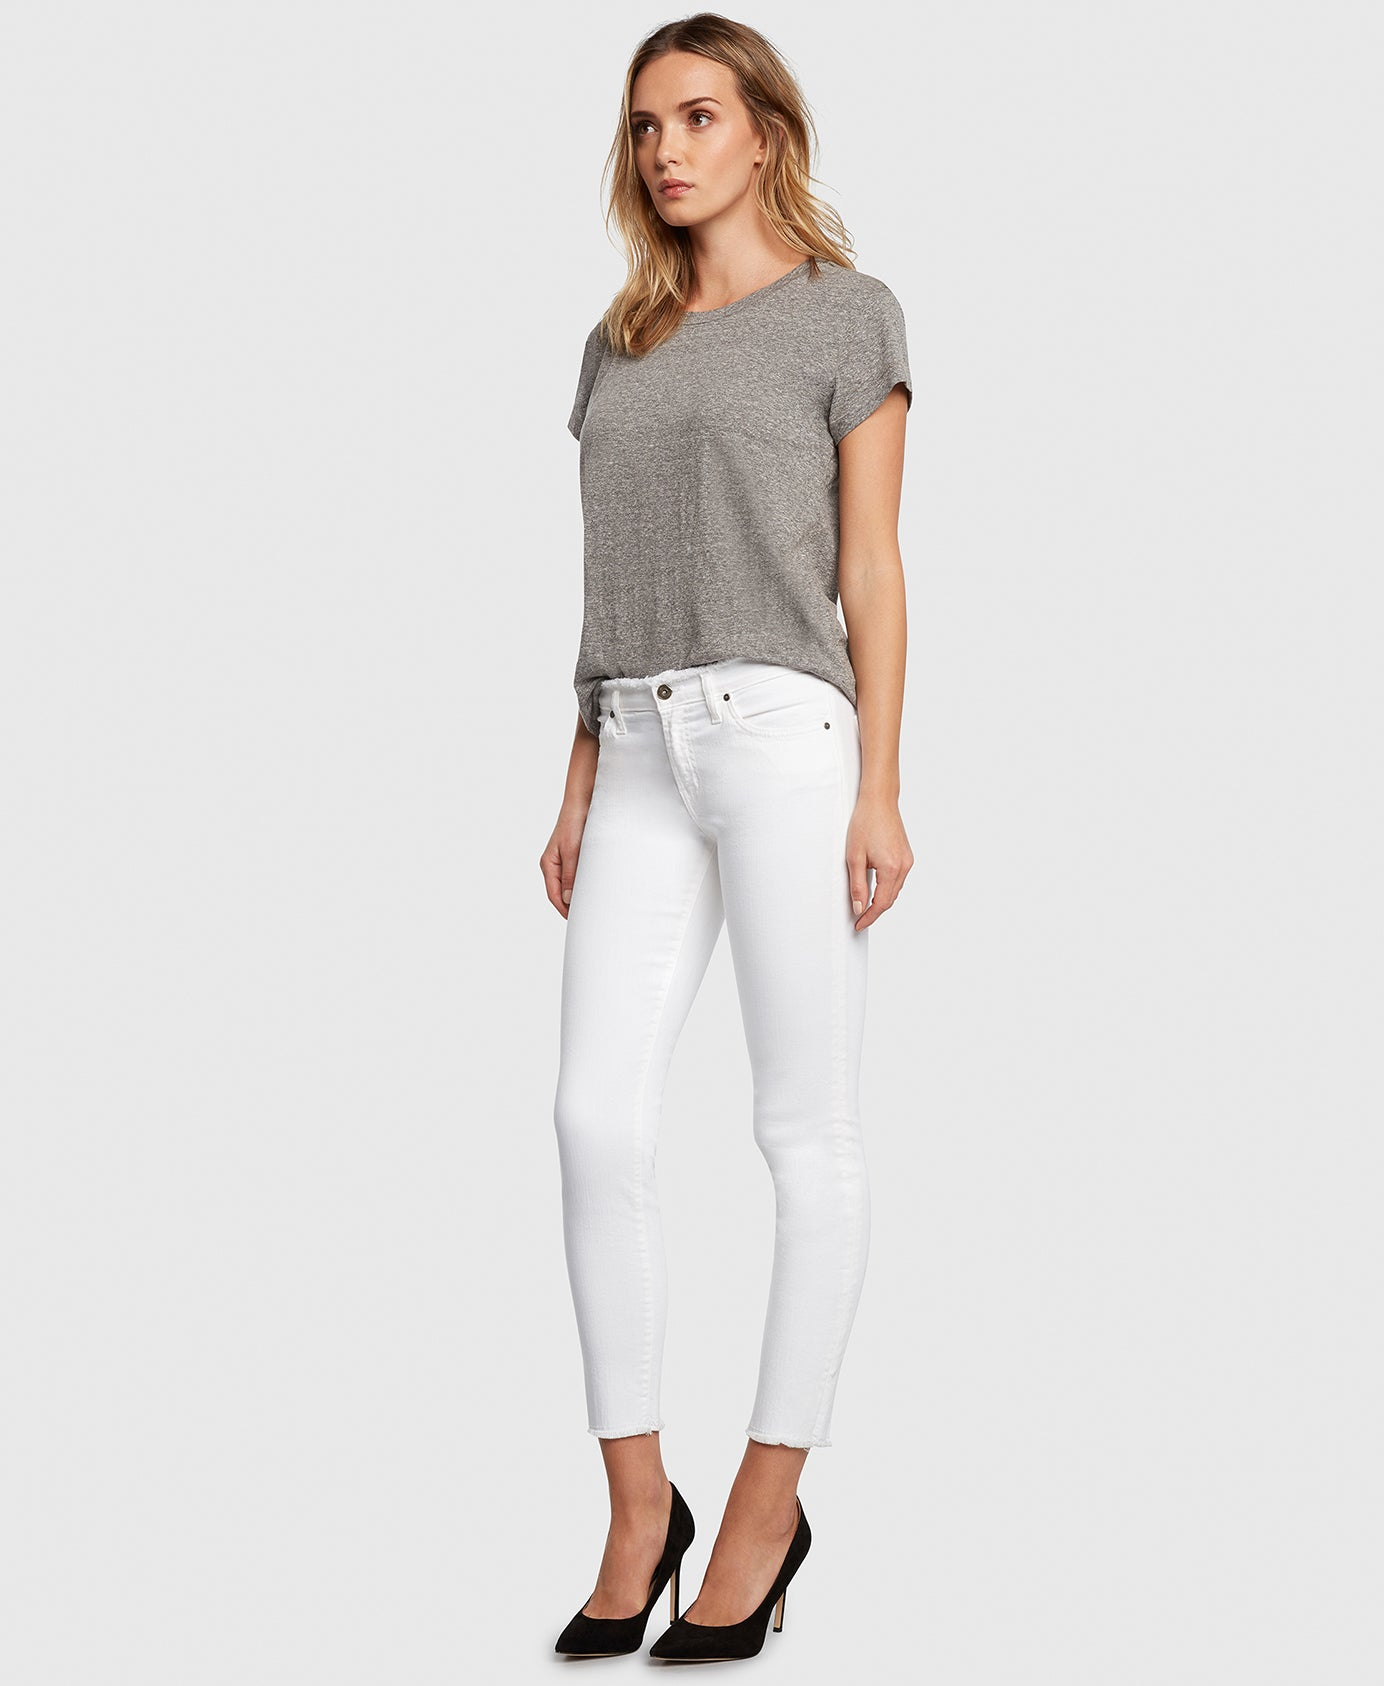 Principle DREAMER in White Tripper raw edge jeans side